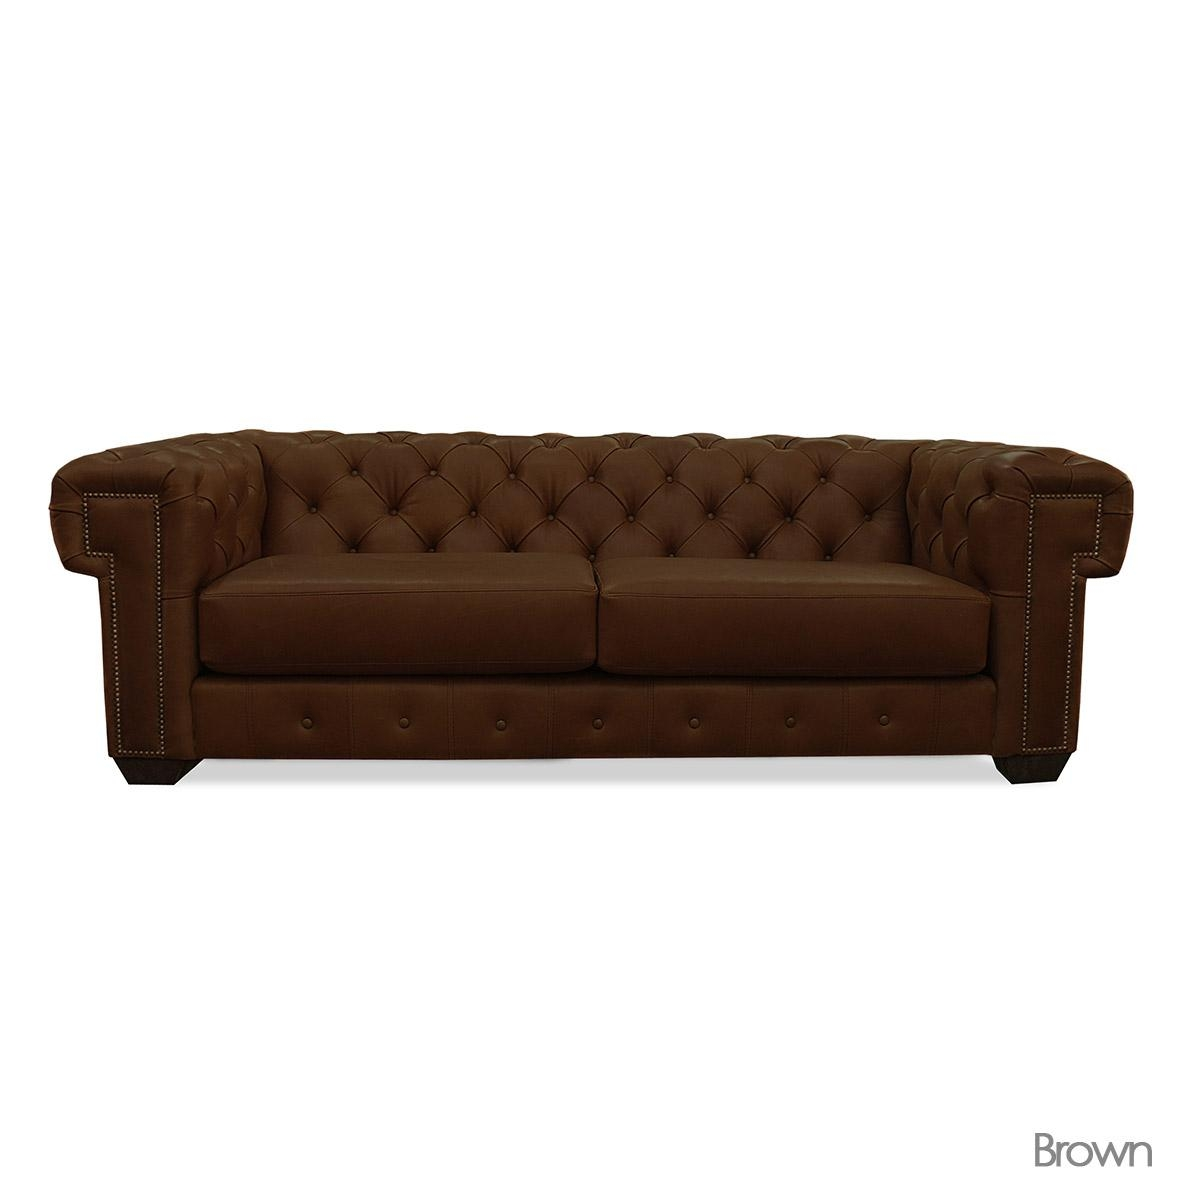 Brown Leather Tufted Sofa With Design Ideas 10493 | Kengire With Regard To Brown Leather Tufted Sofas (Image 2 of 20)